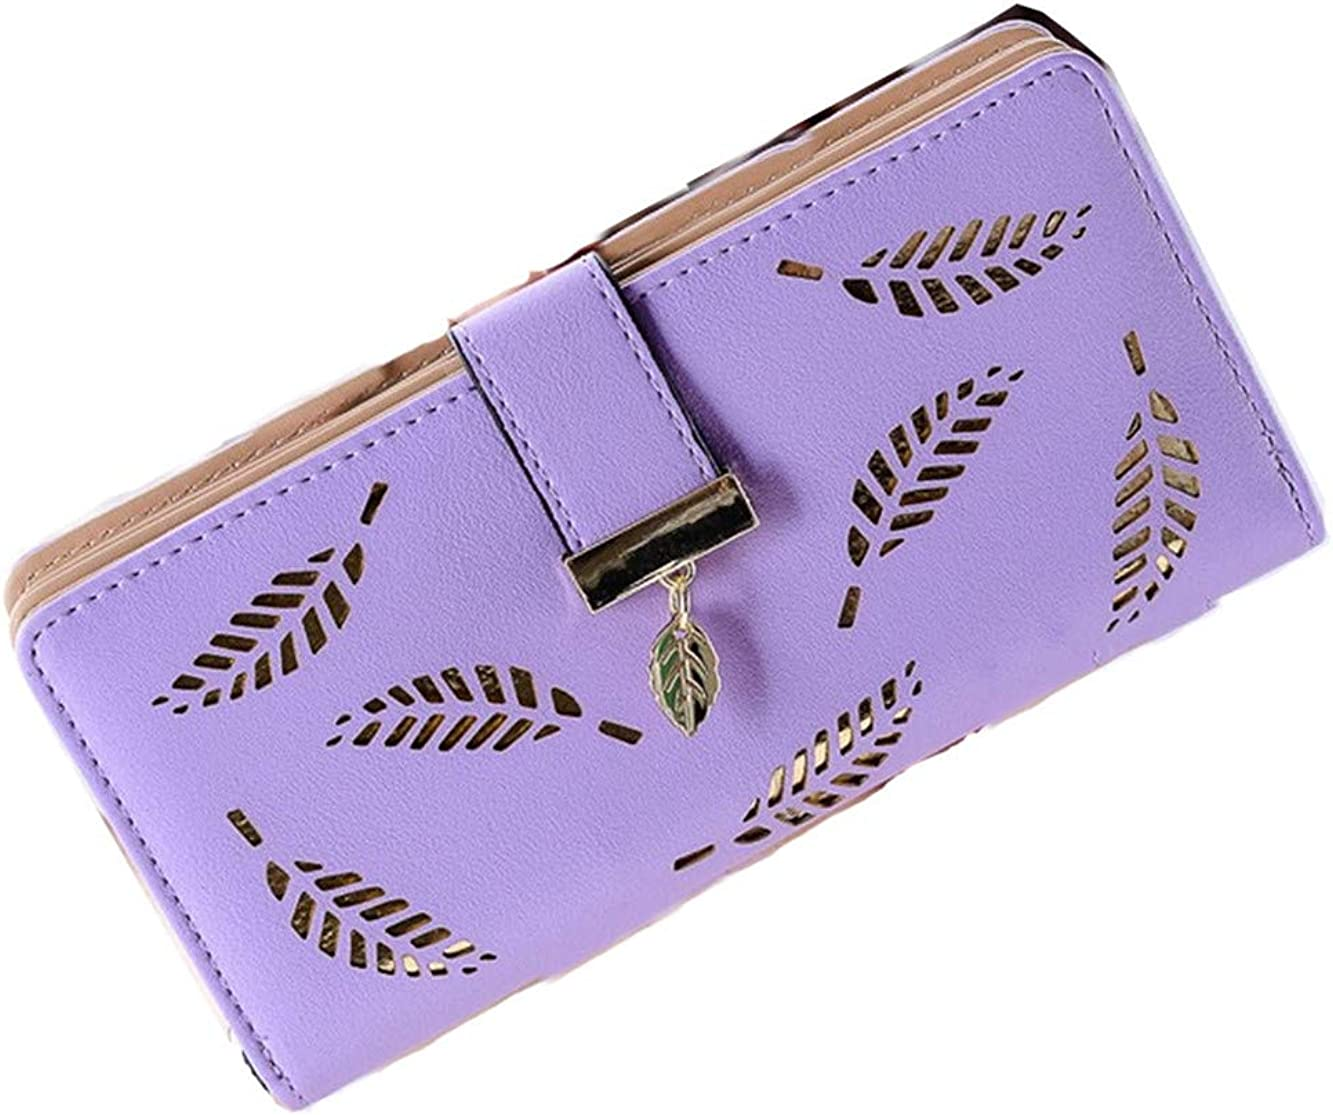 Spasm price Wallets for outlet Women Leather Handbag Purse Card Holder Coin Clutch